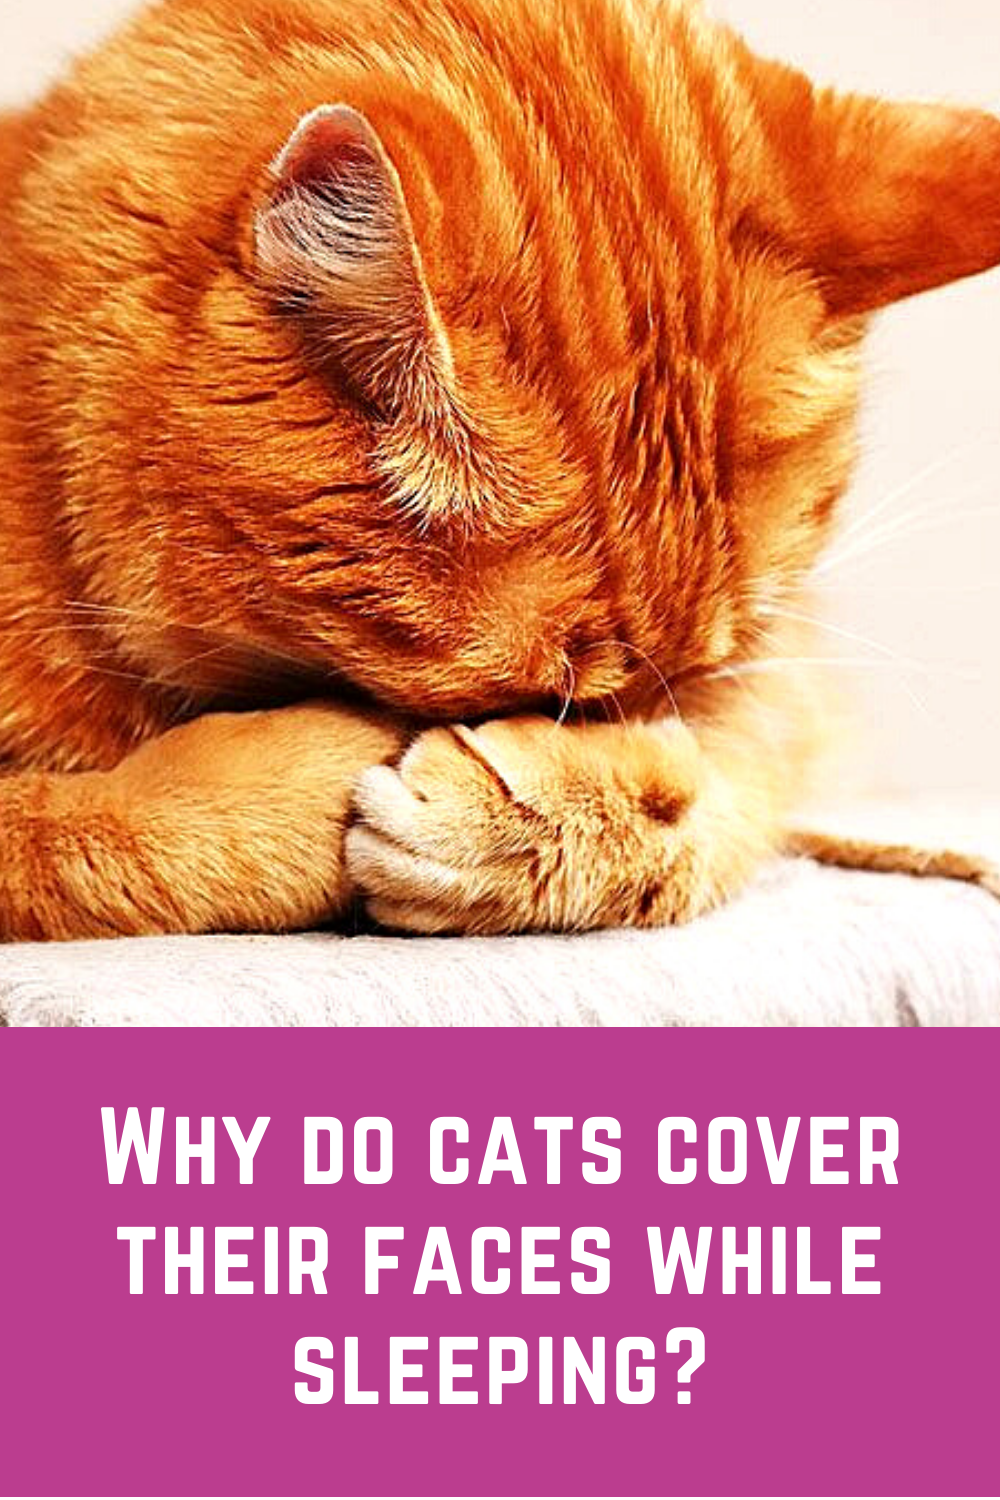 4 Reasons Why Cats Cover Their Faces While Sleeping In 2020 Cats Cat Facts Cat Shirts Funny